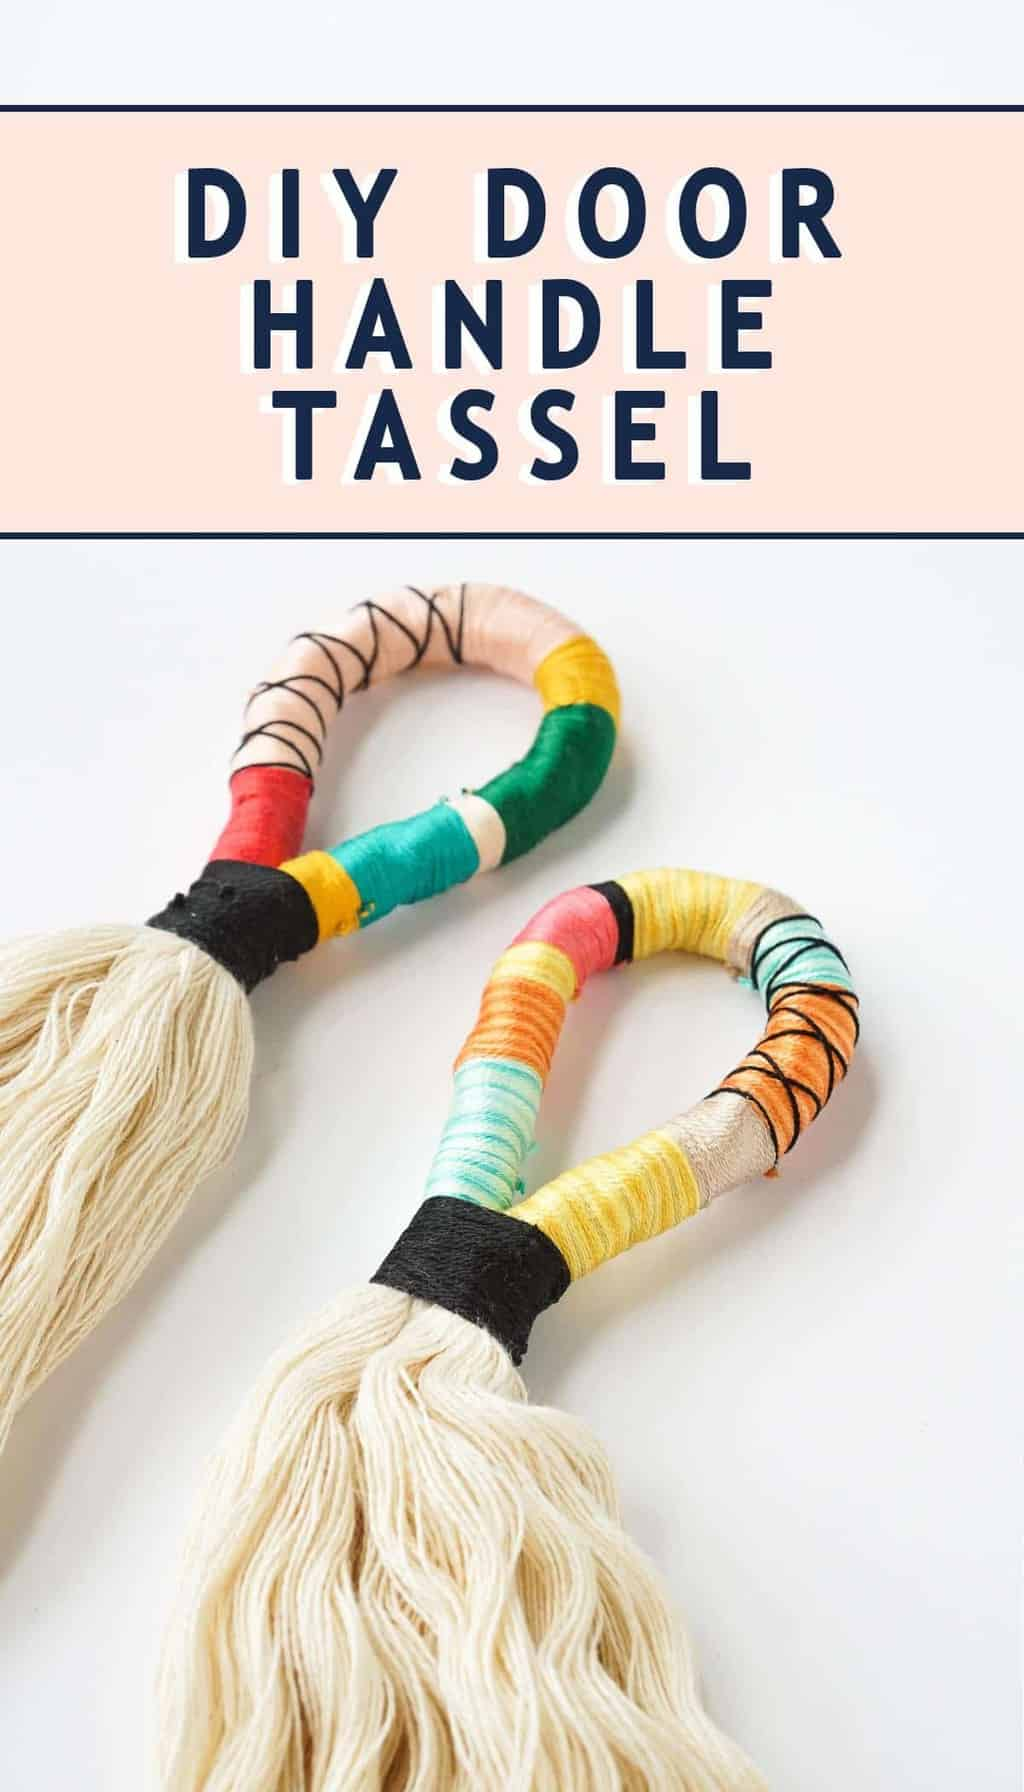 photo of the DIY door handle tassels by top Houston lifestyle blogger Ashley Rose of Sugar & Cloth